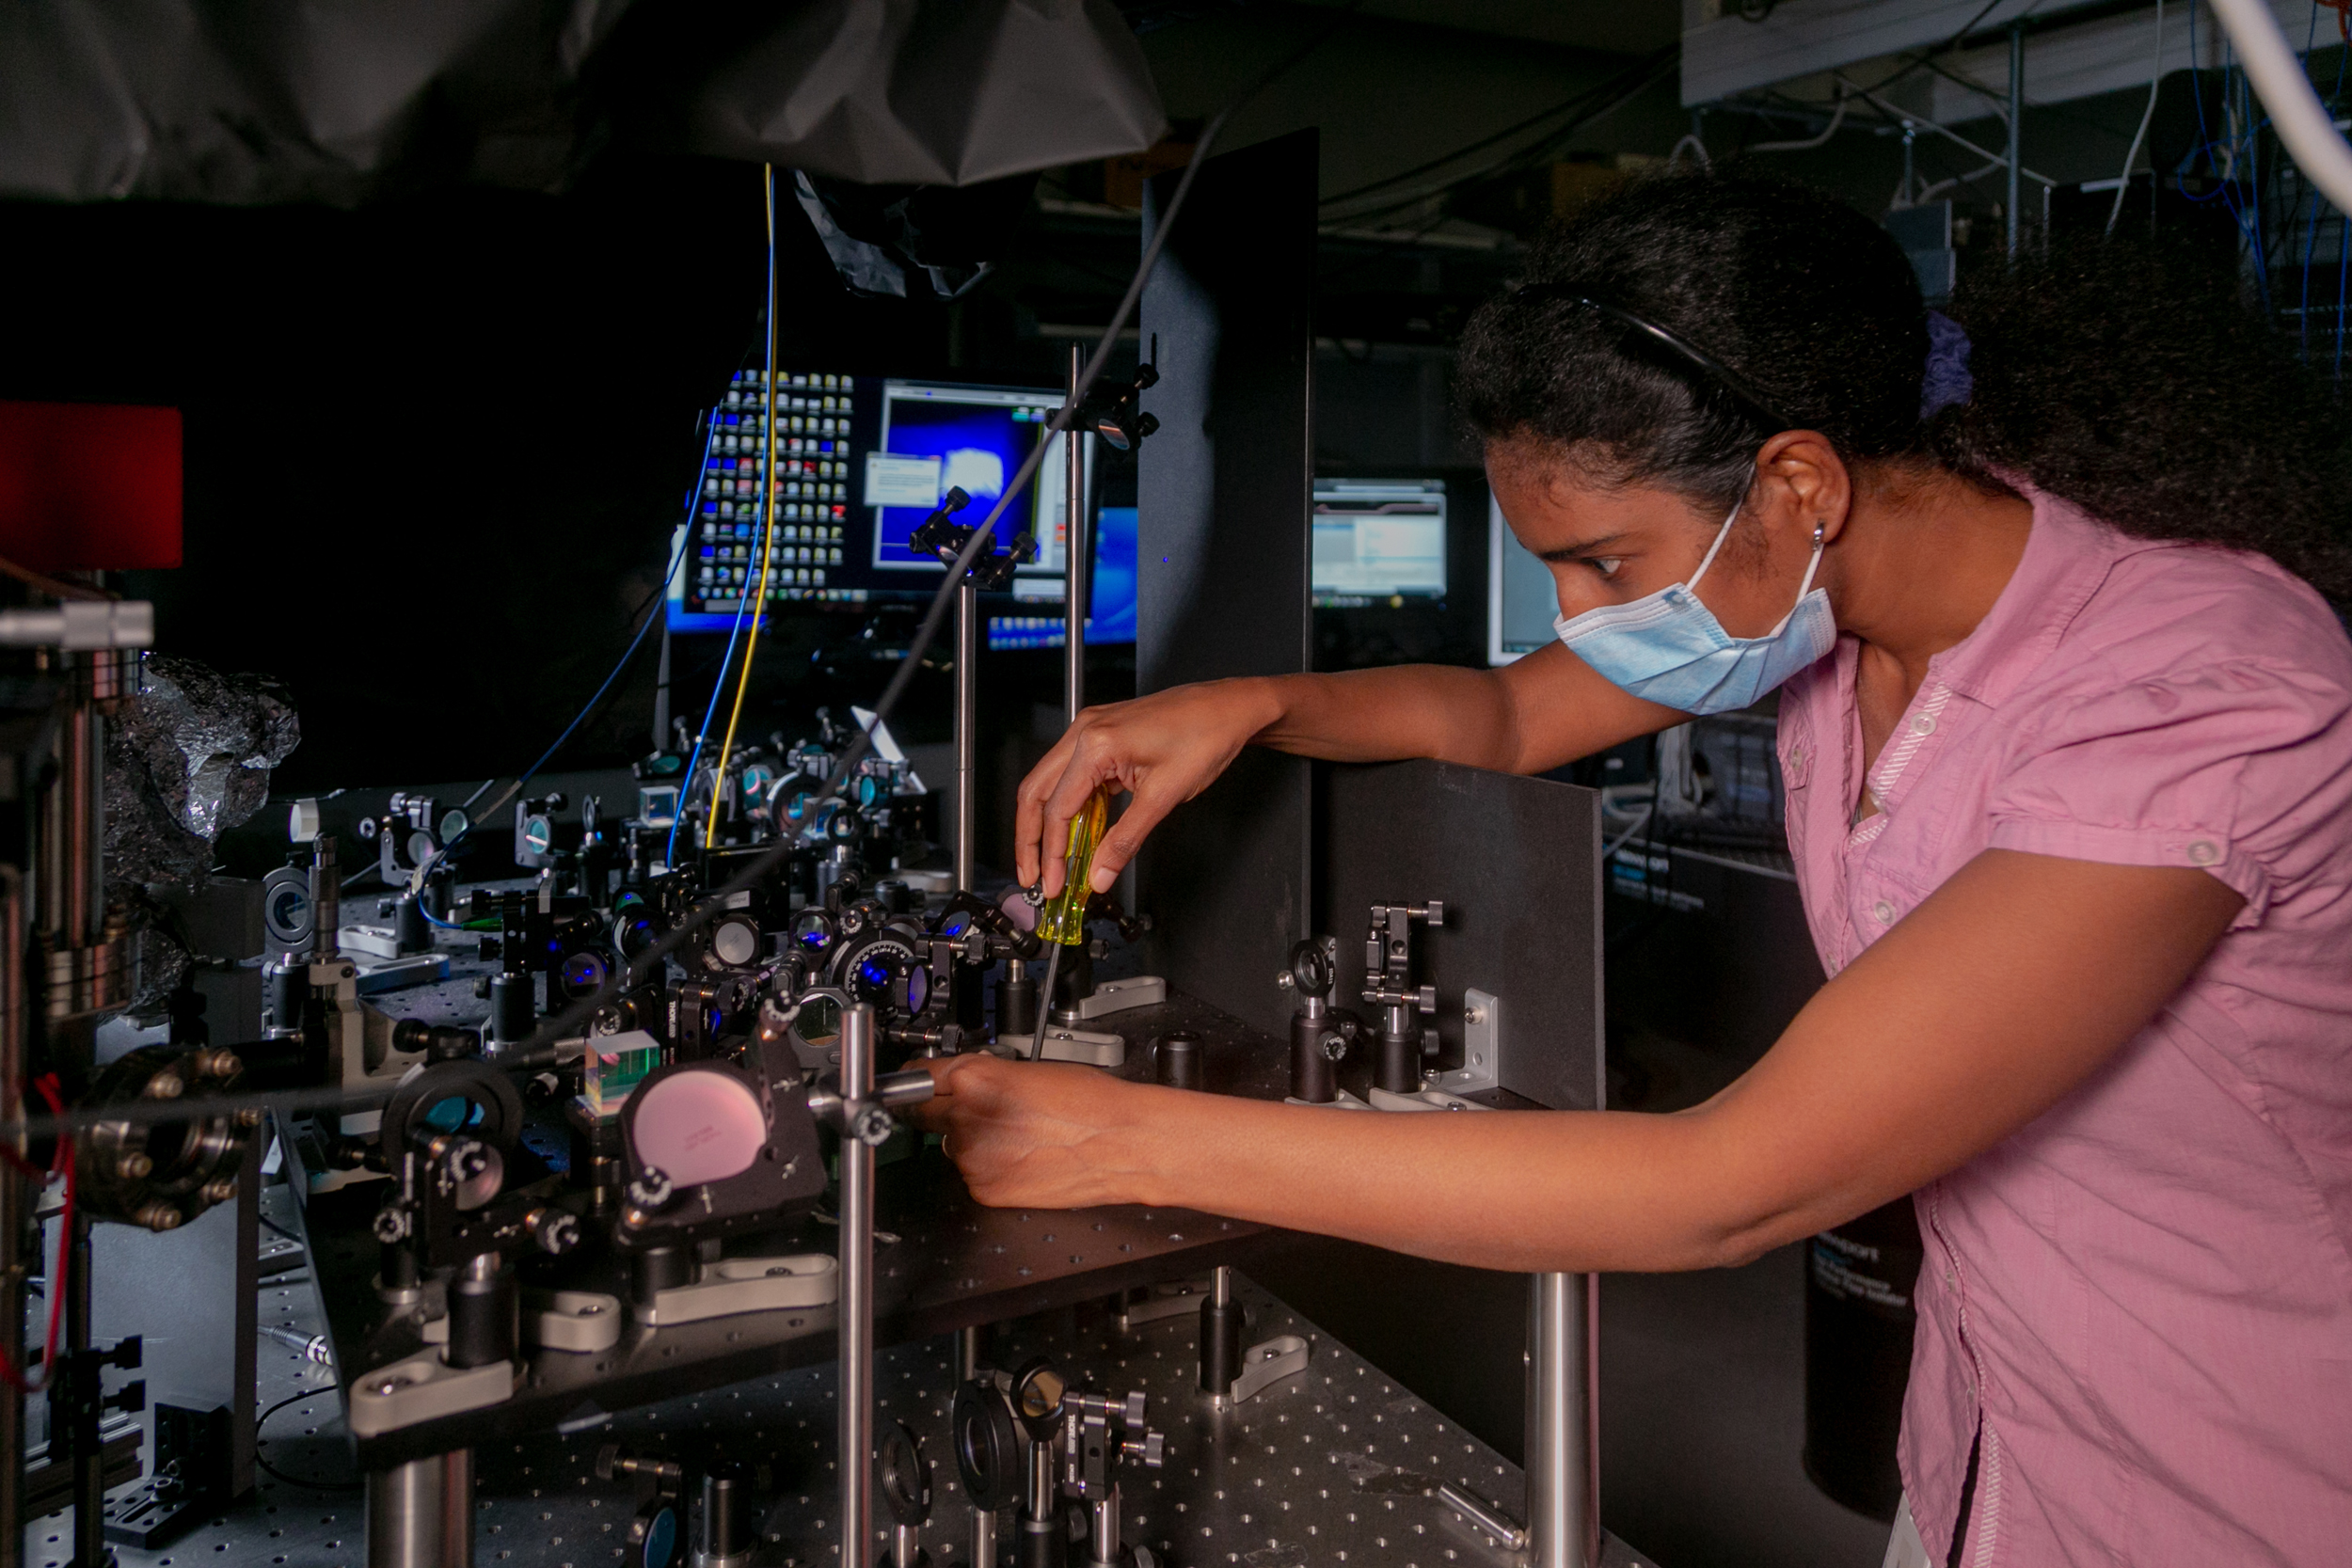 Jyothi Saraladevi, a Postdoctoral Associate in the Brown Lab works on a quantum computer setup.